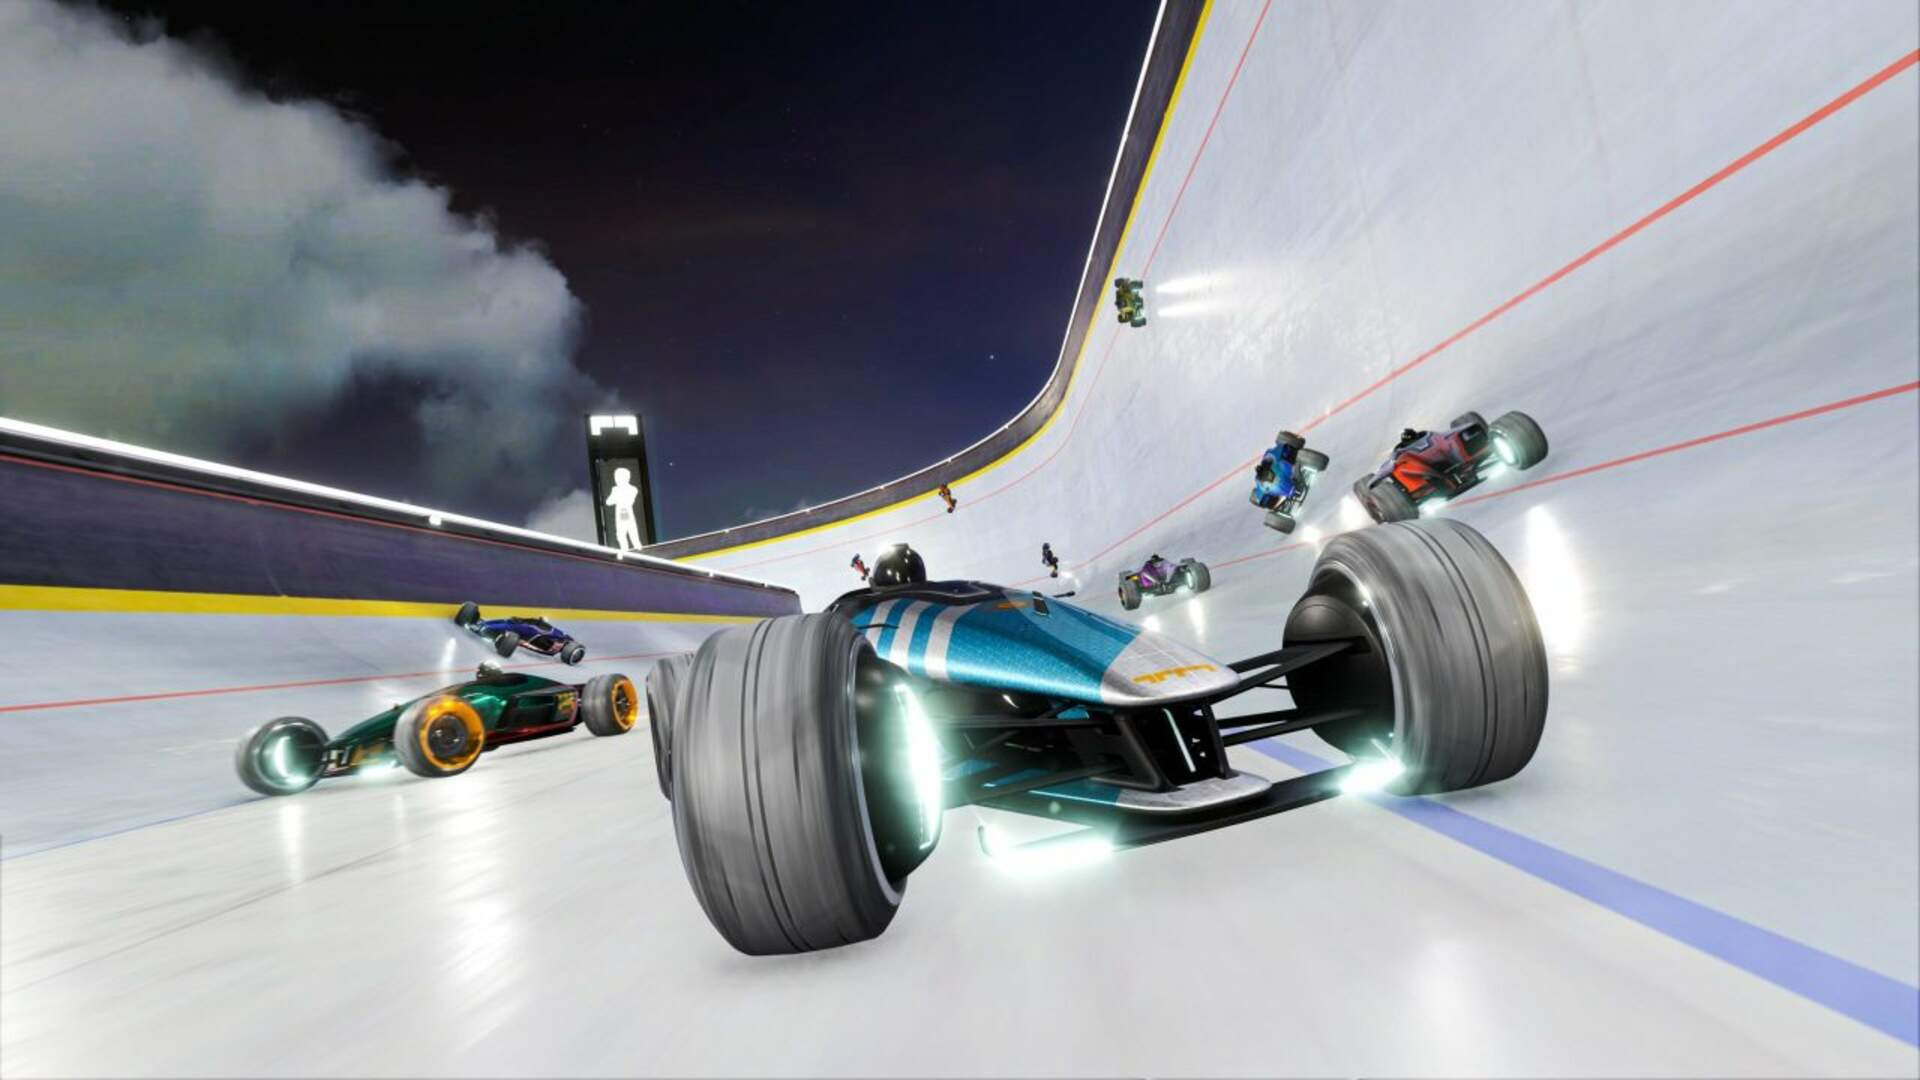 Trackmania Nations Remake Has Been Delayed To This July